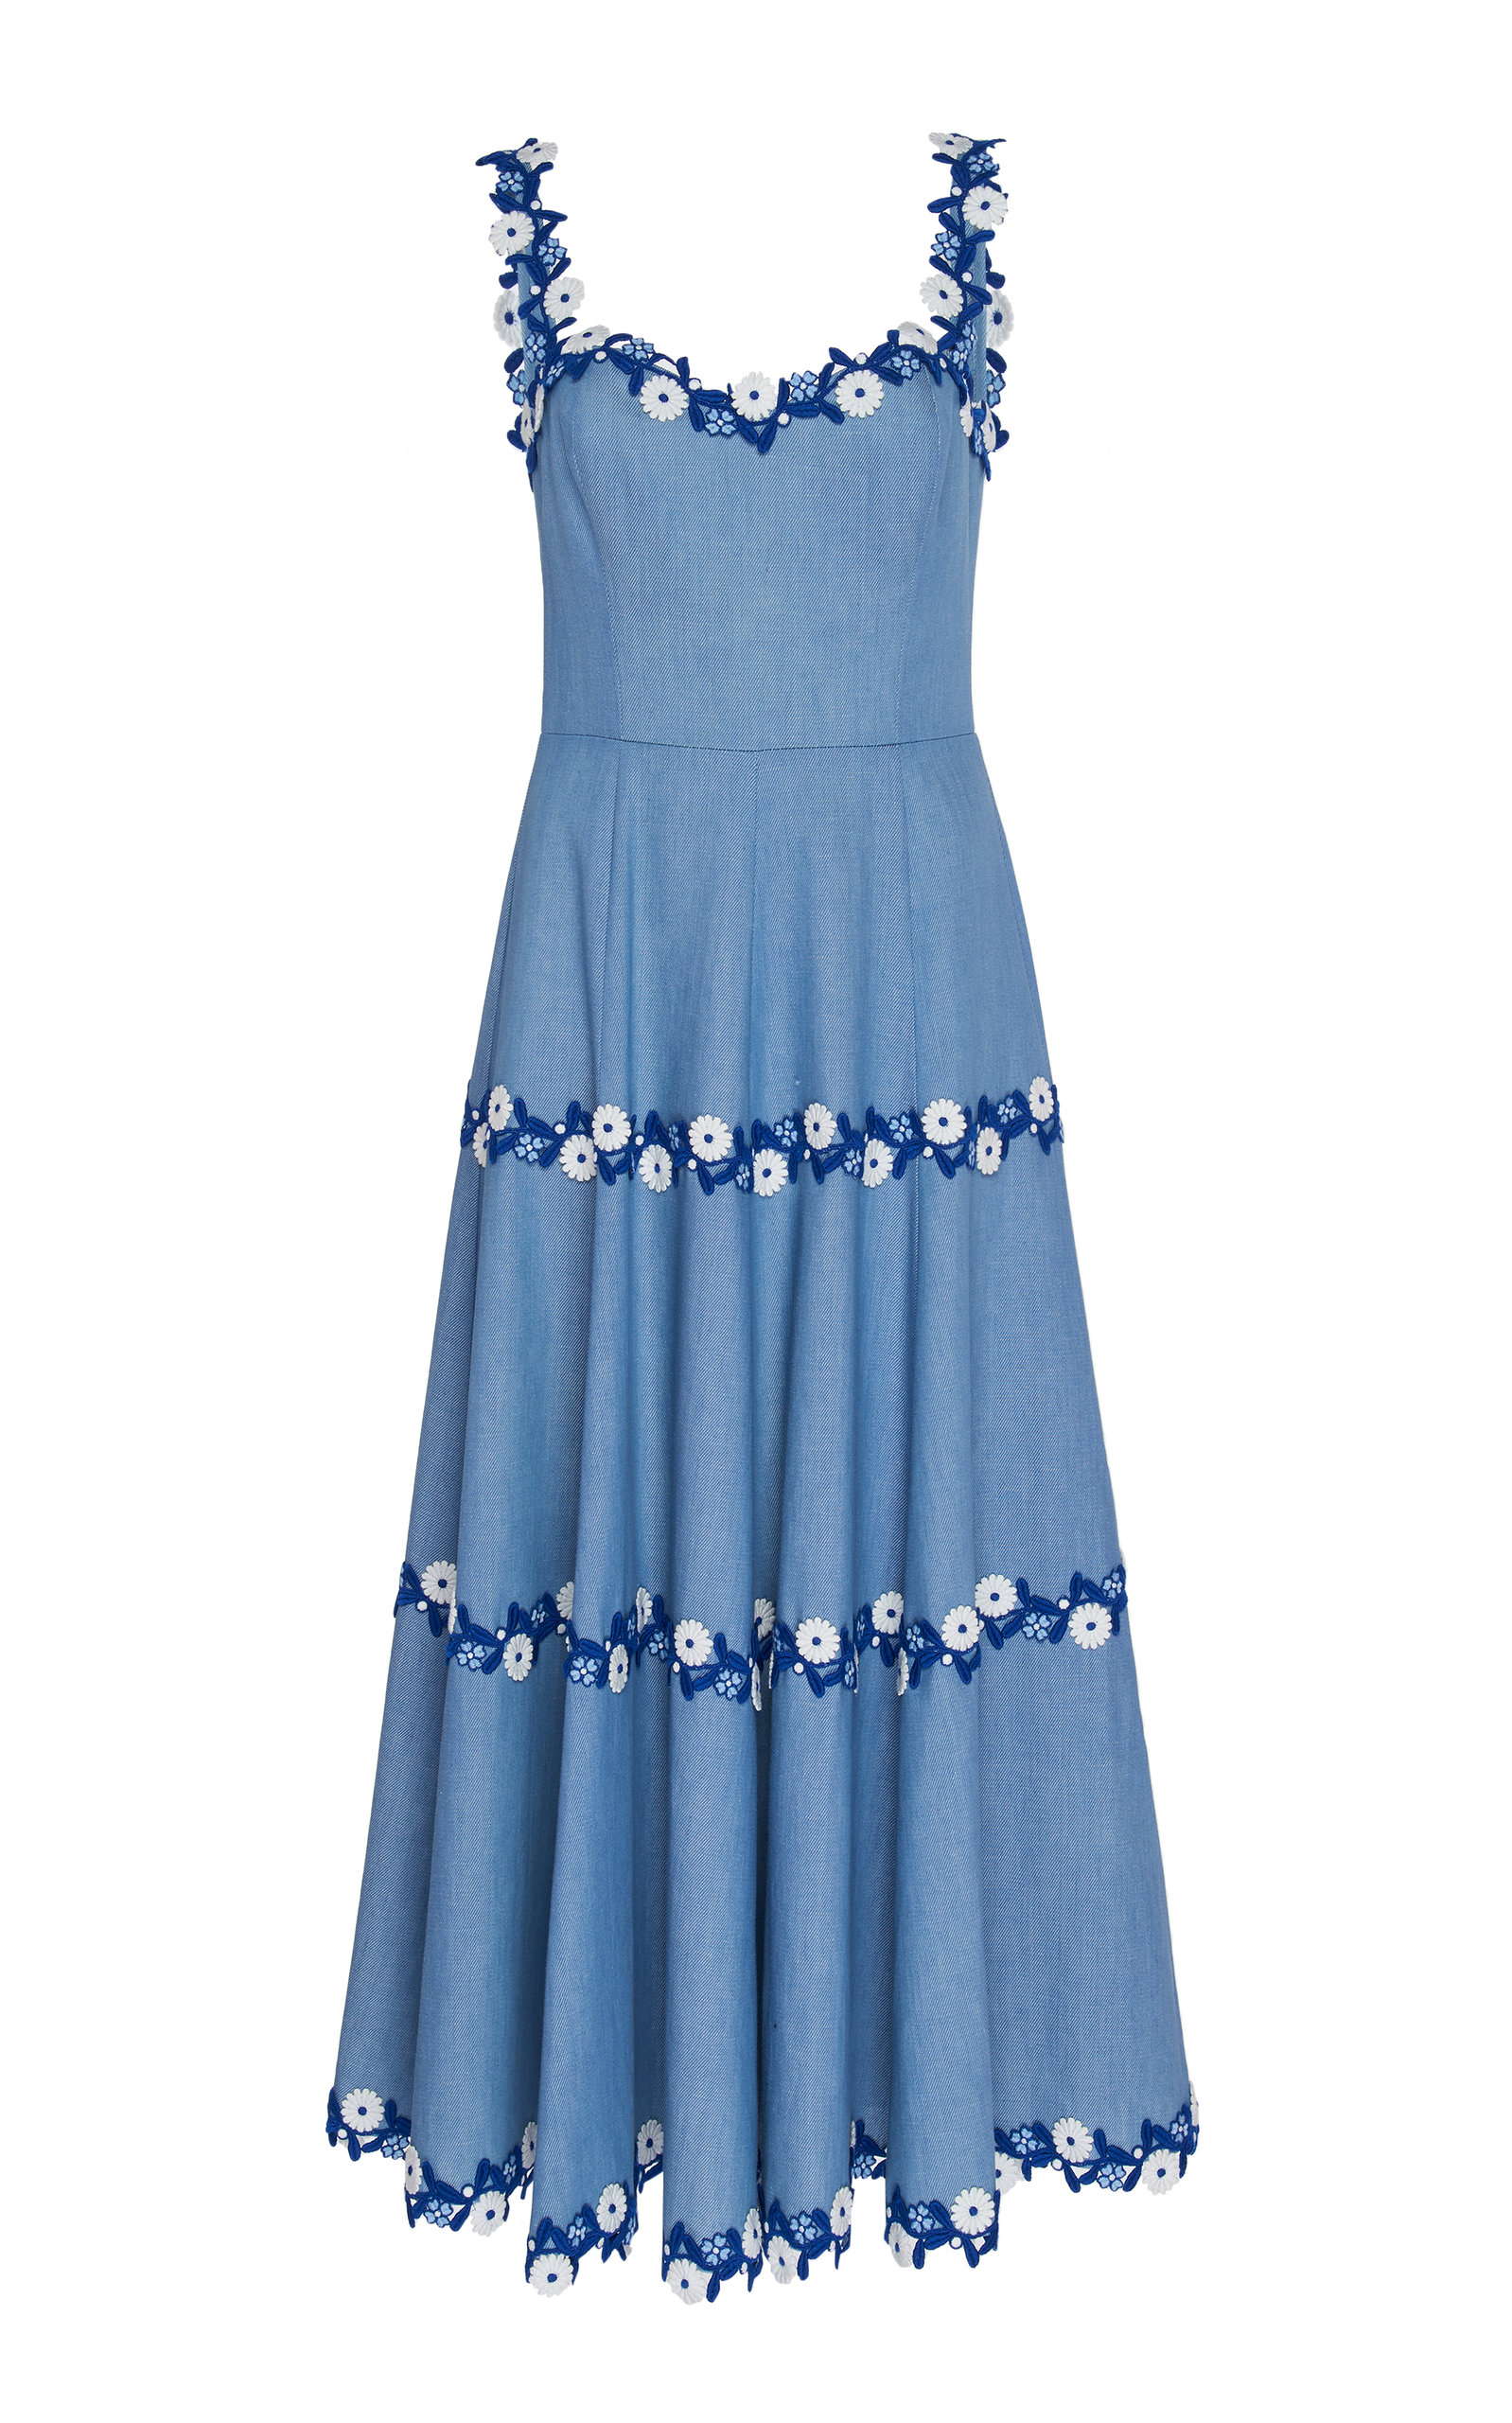 Pleated Embroidered Cotton Dress by Andrew Gn